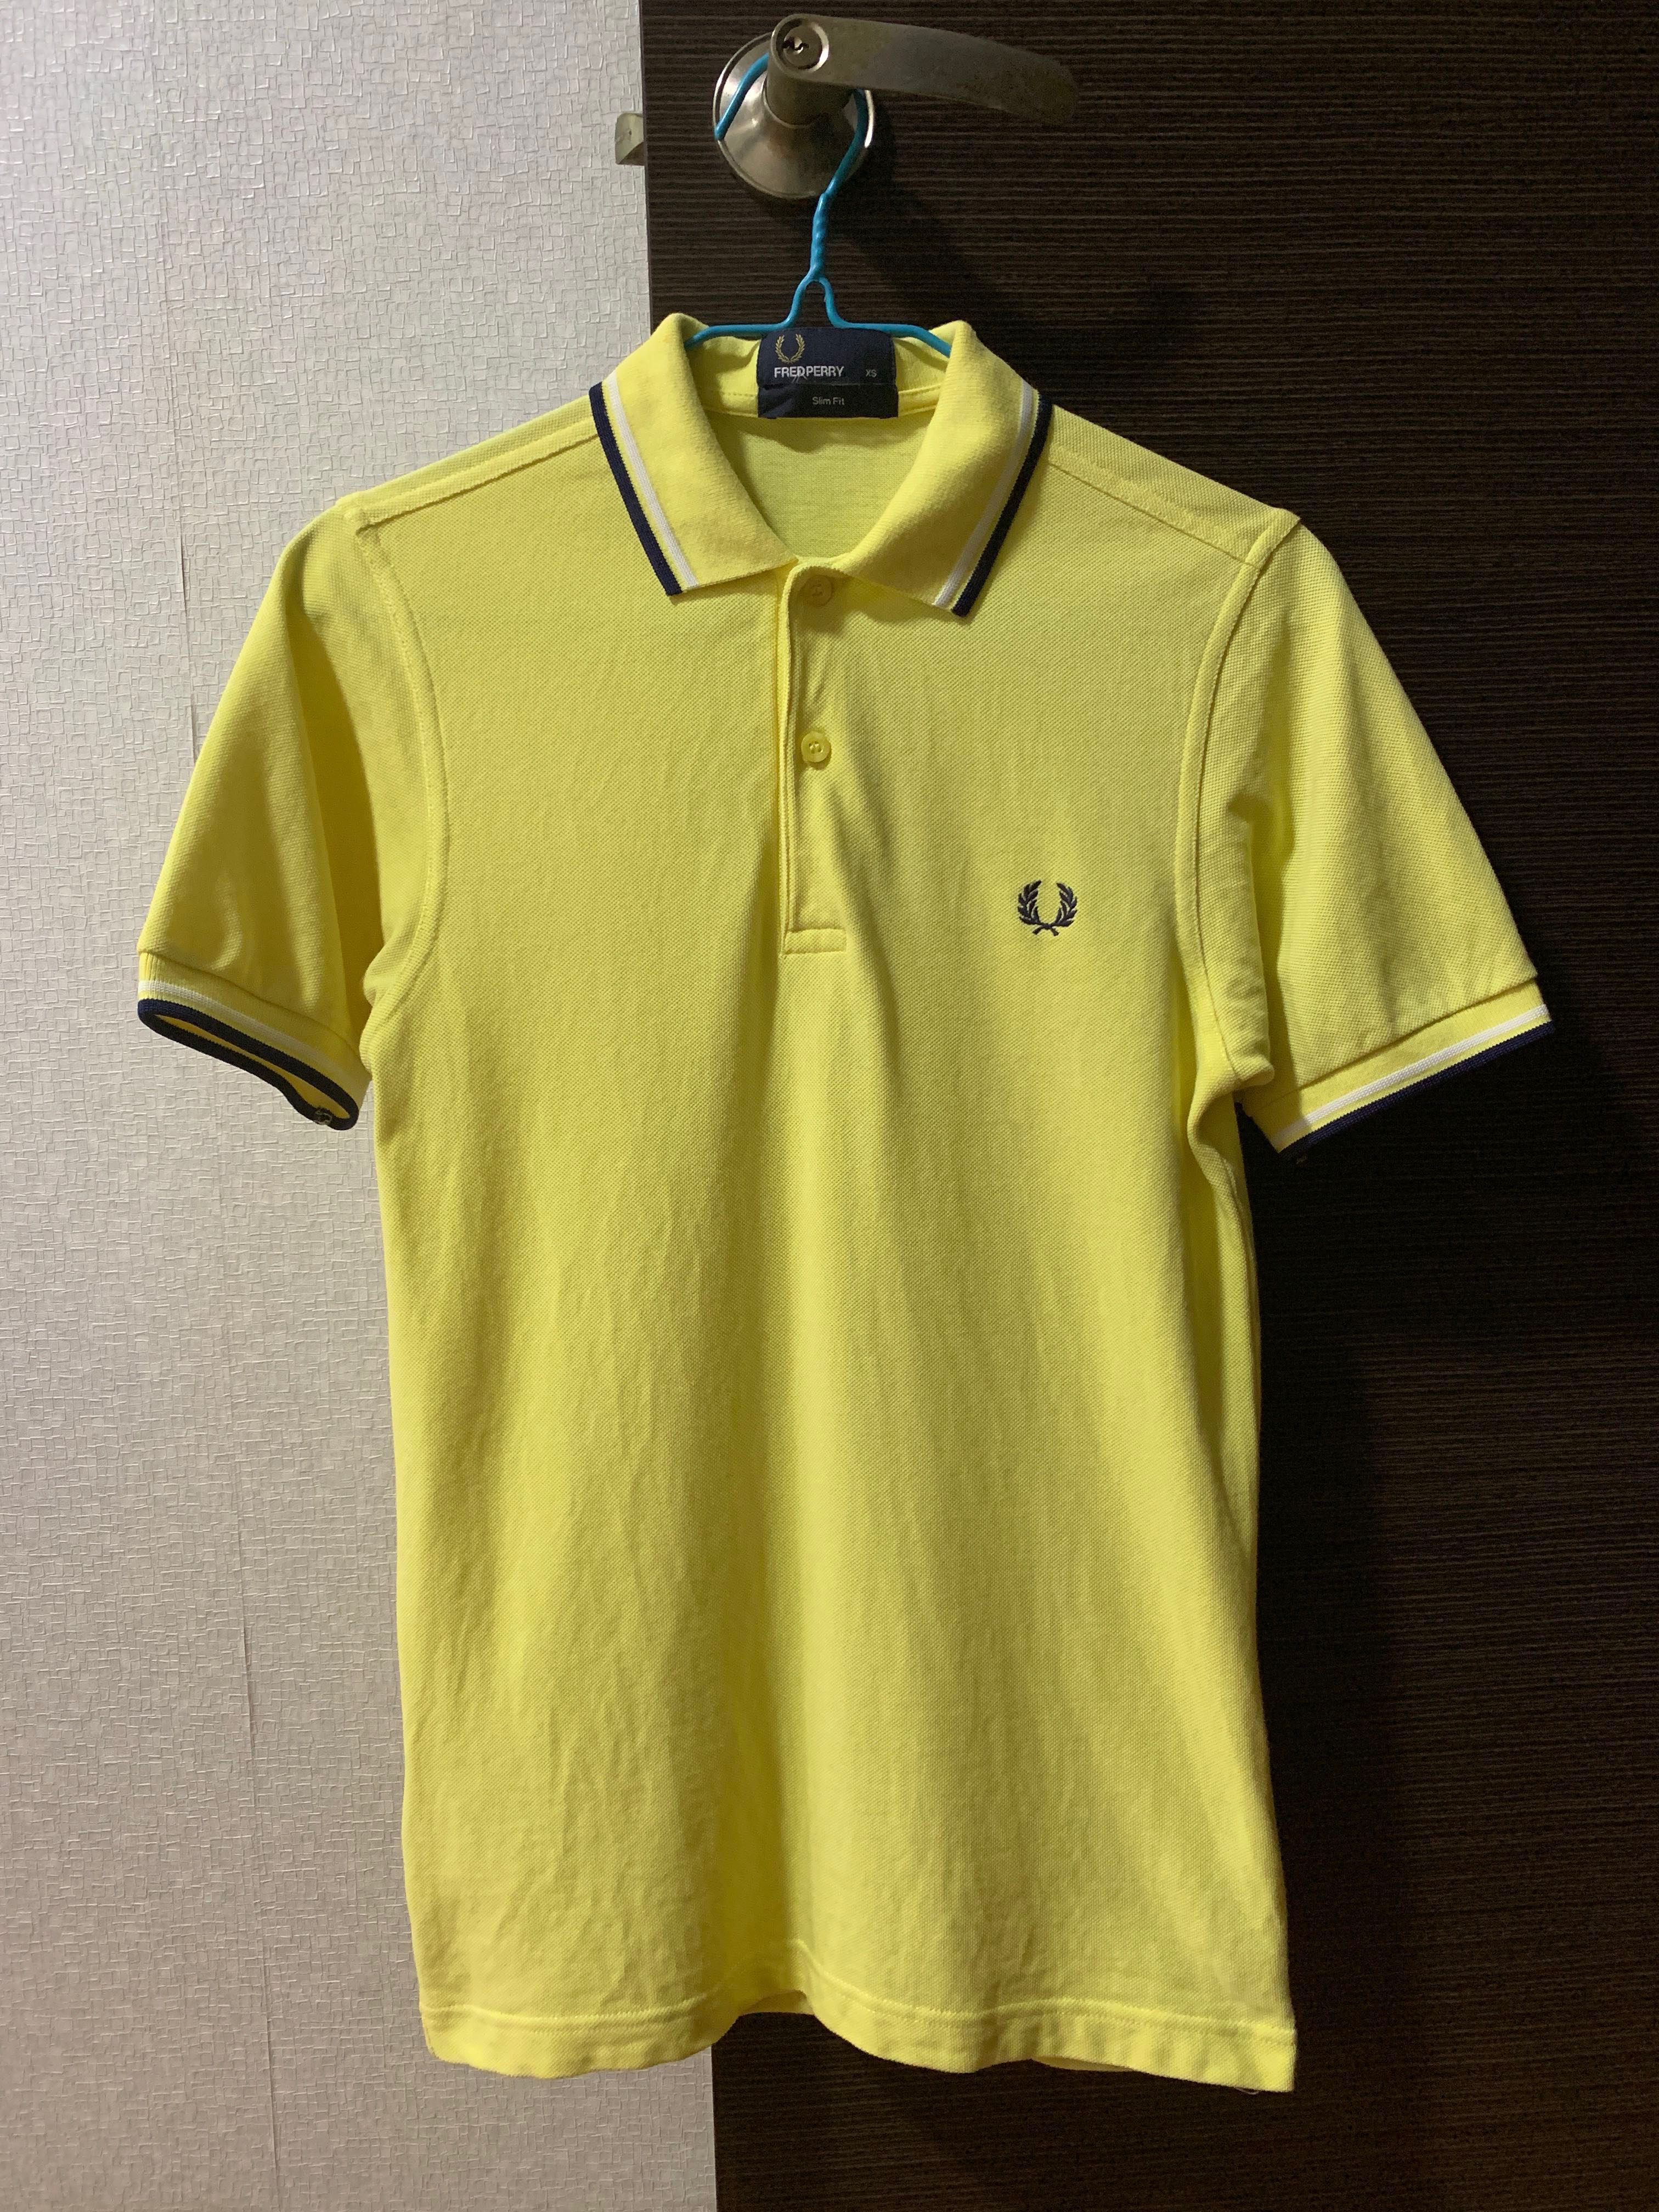 99a0d0b60 Fred Perry Polo Tee, Women's Fashion, Clothes, Tops on Carousell